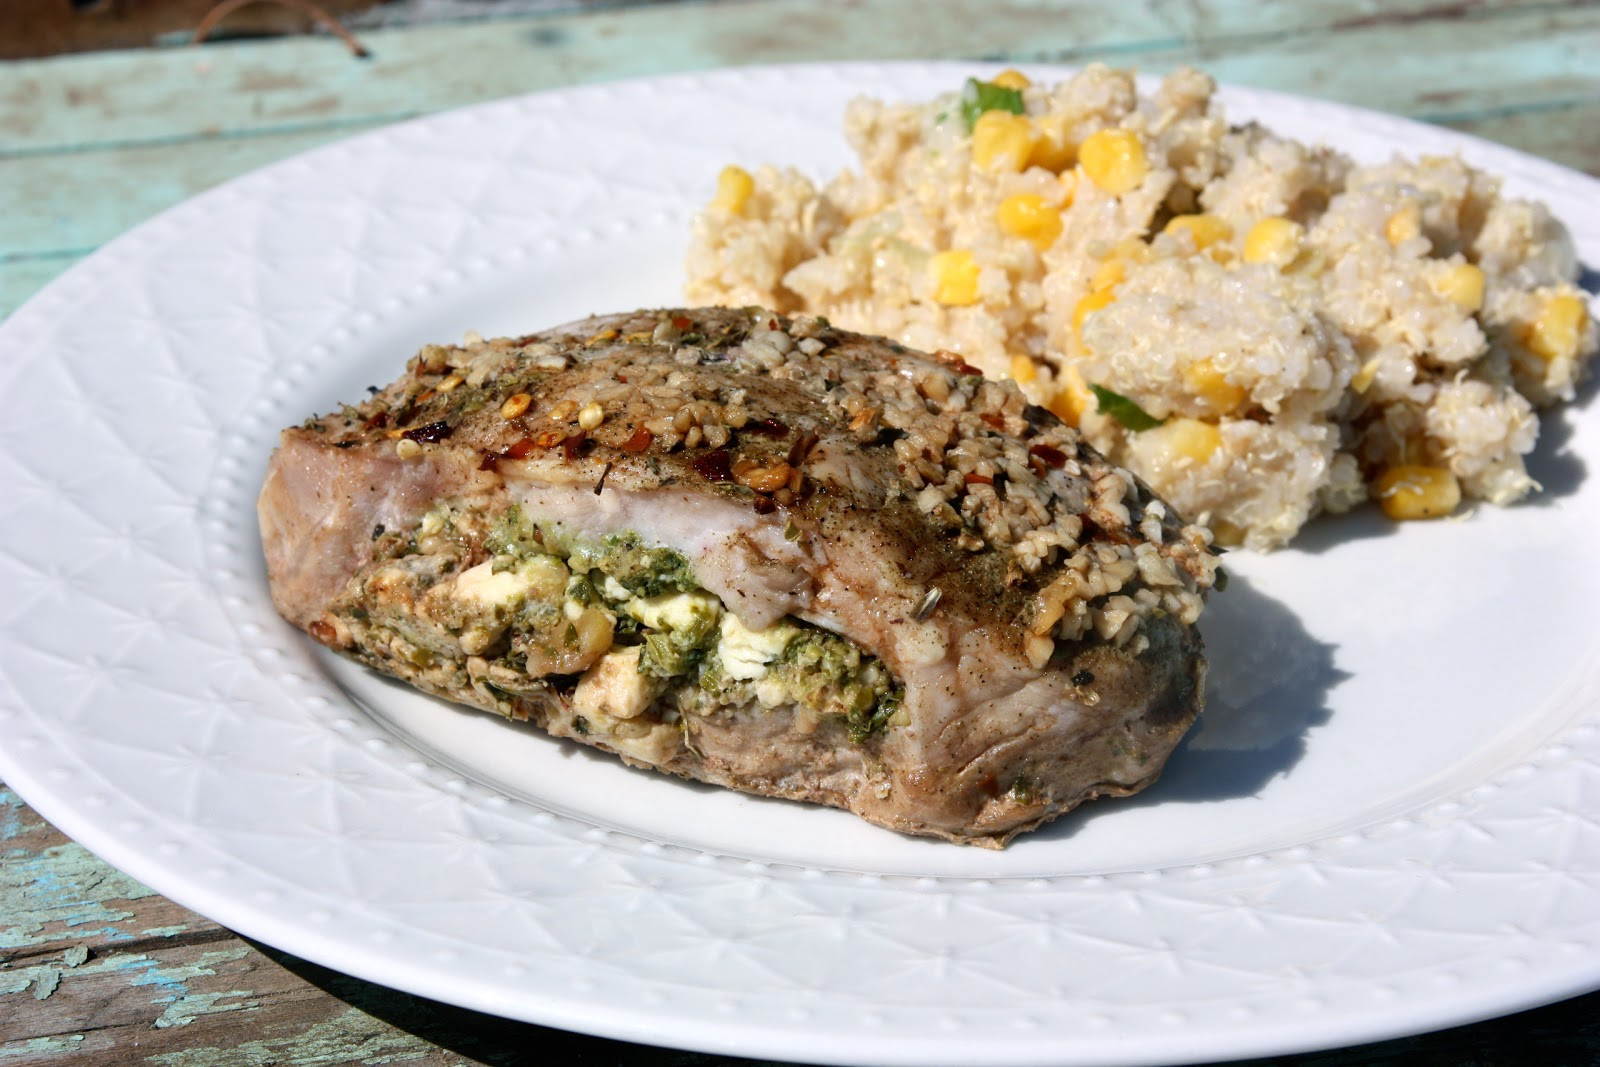 My Recipe Box: Feta and Pesto Stuffed Pork Chops